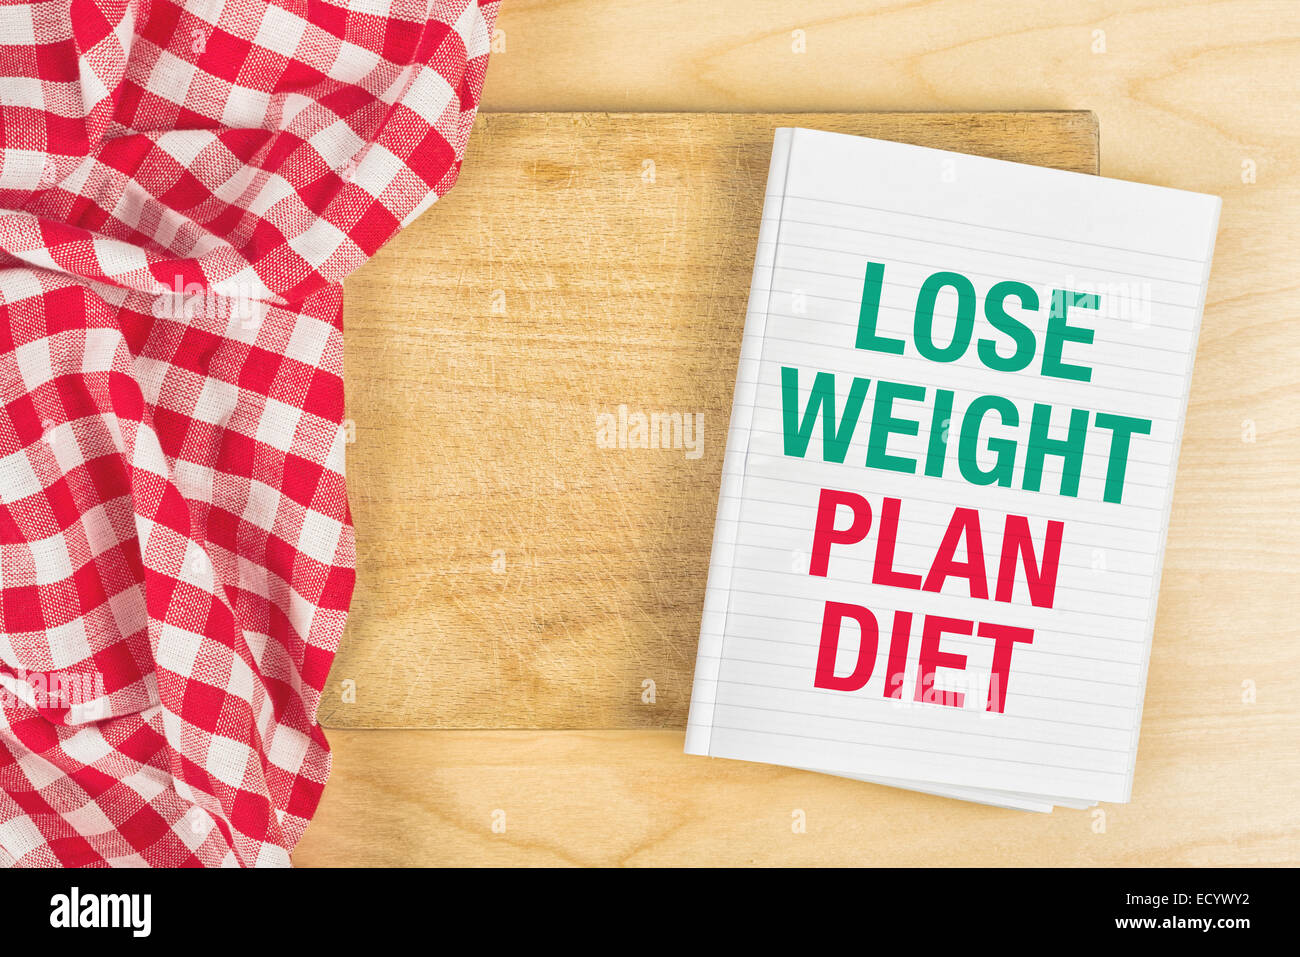 Lose Weight Plan Diet Message in NoteBook on Kitchen Table. - Stock Image